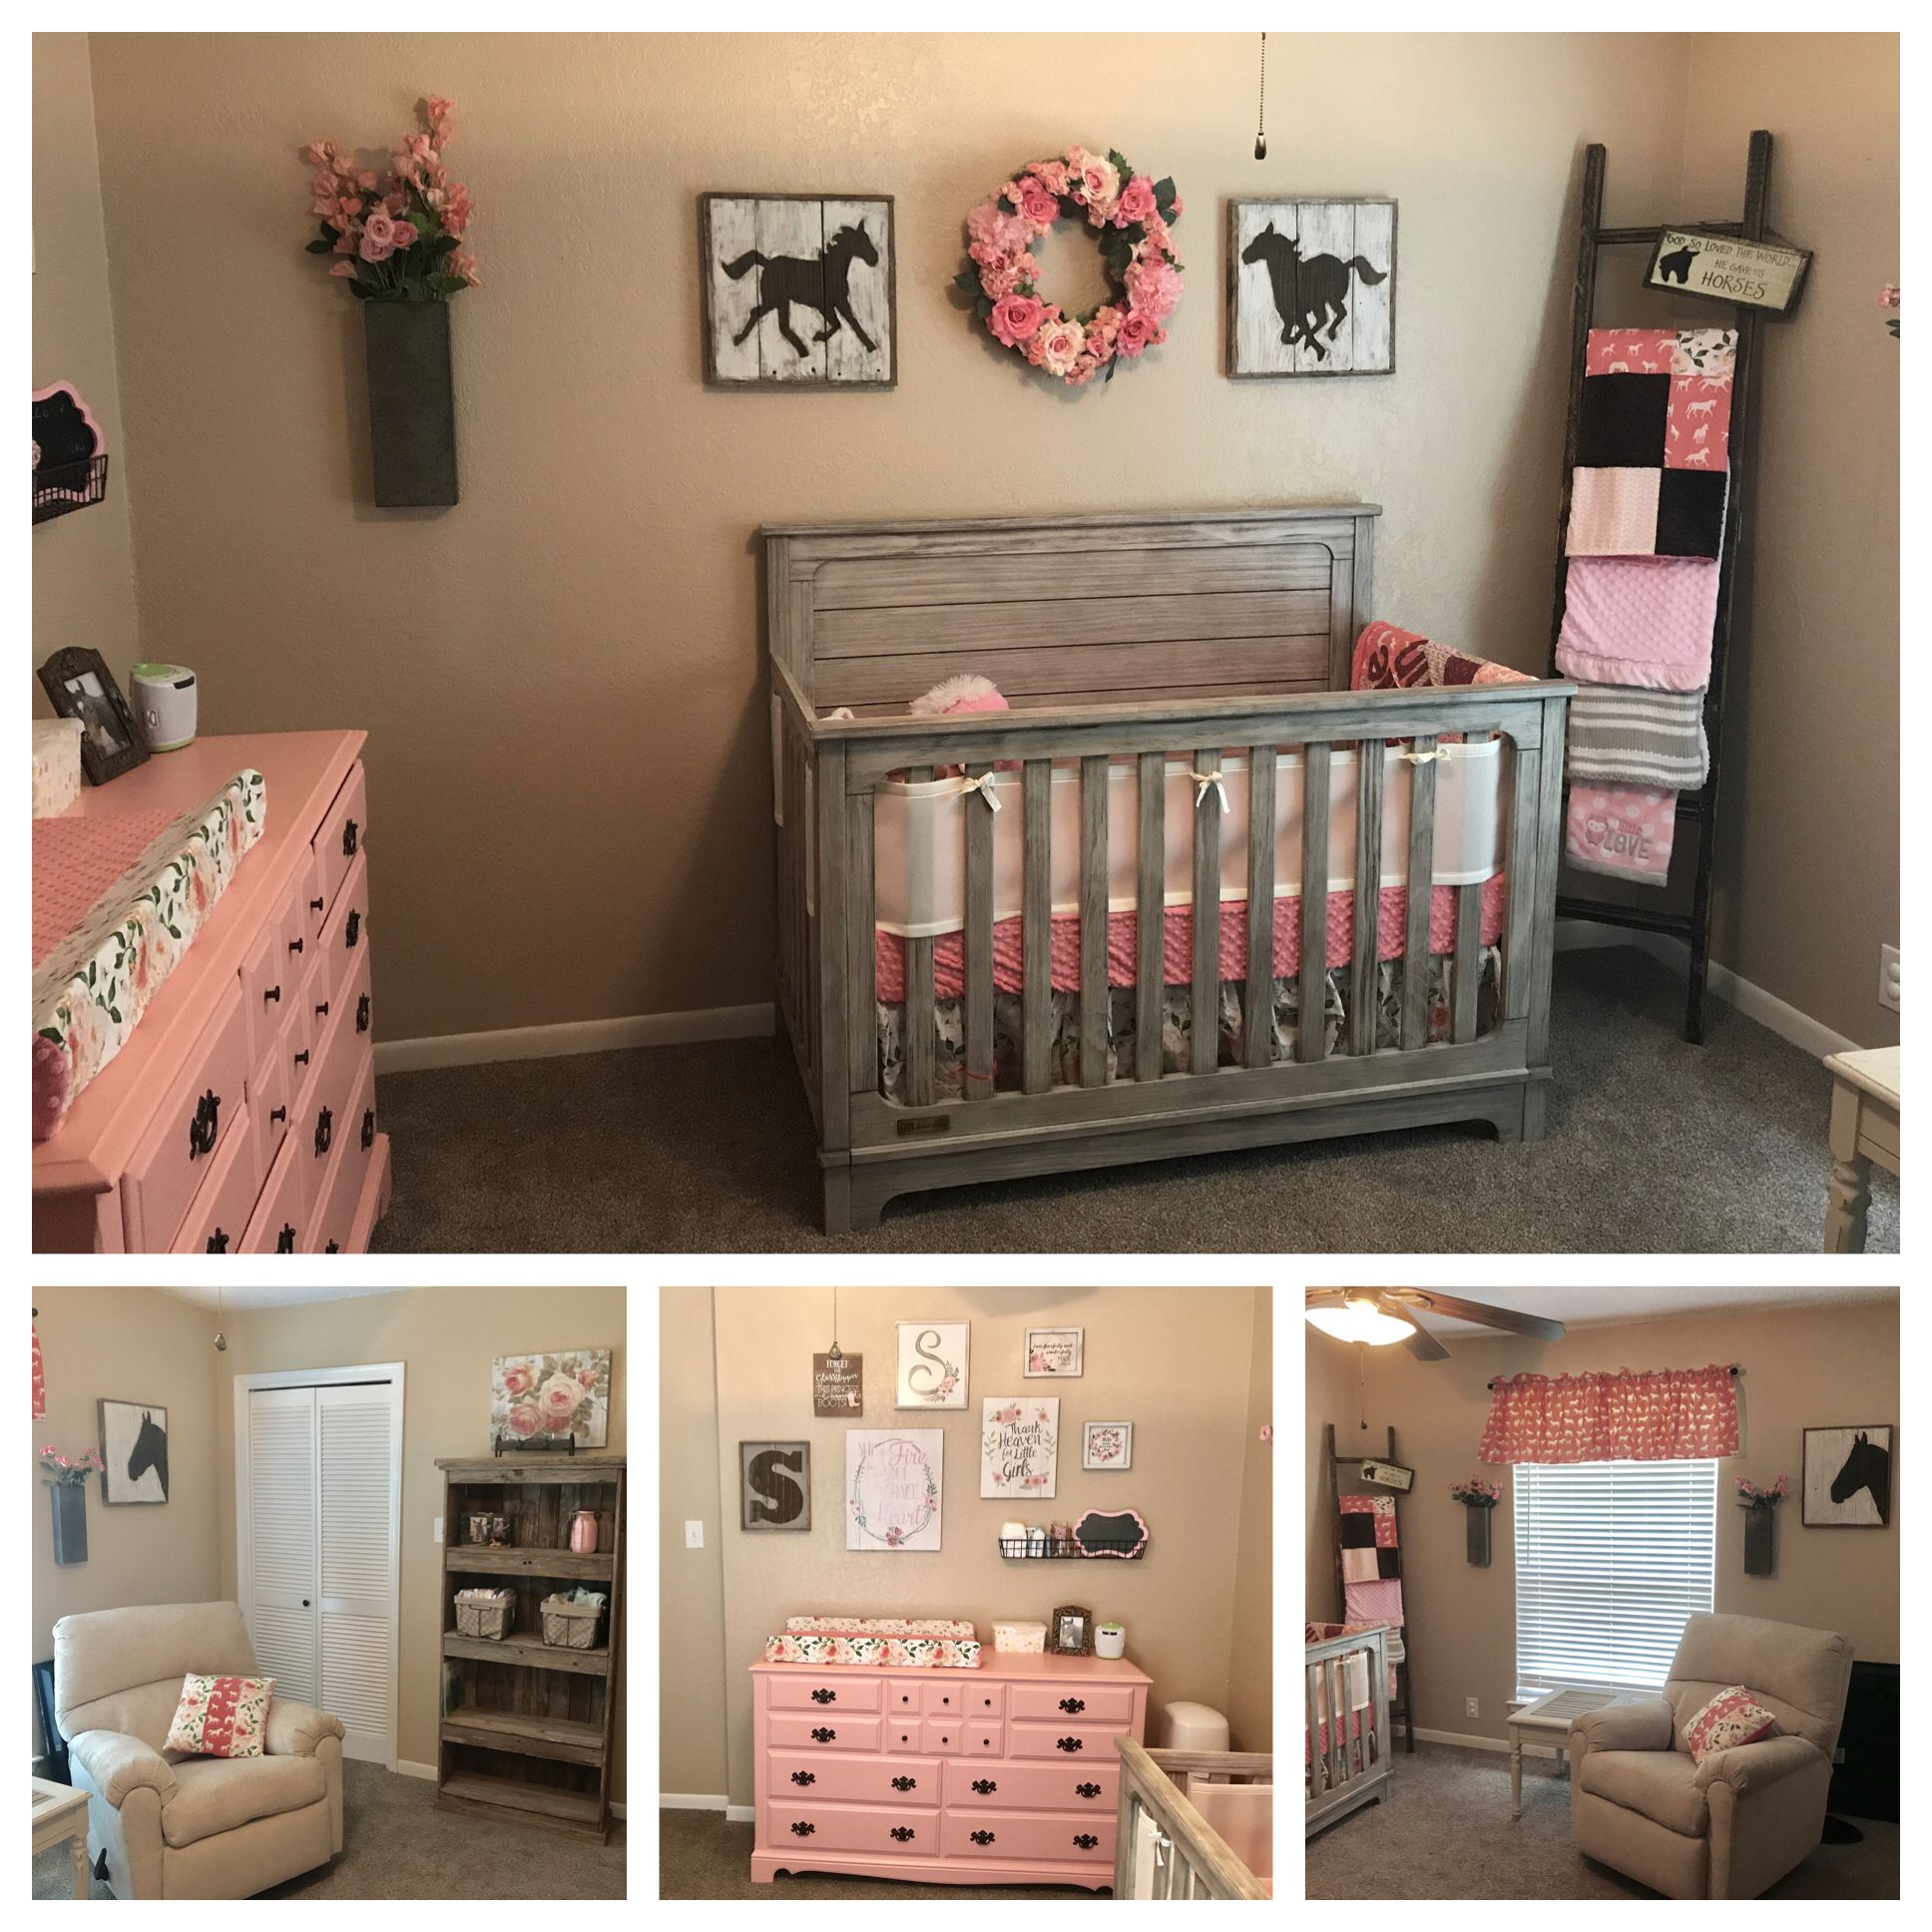 My Little S Sweet Nursery Rustic Horses And Roses Barn Wood Accents A Soft Dusty C Pink Color Ideas Baby Room